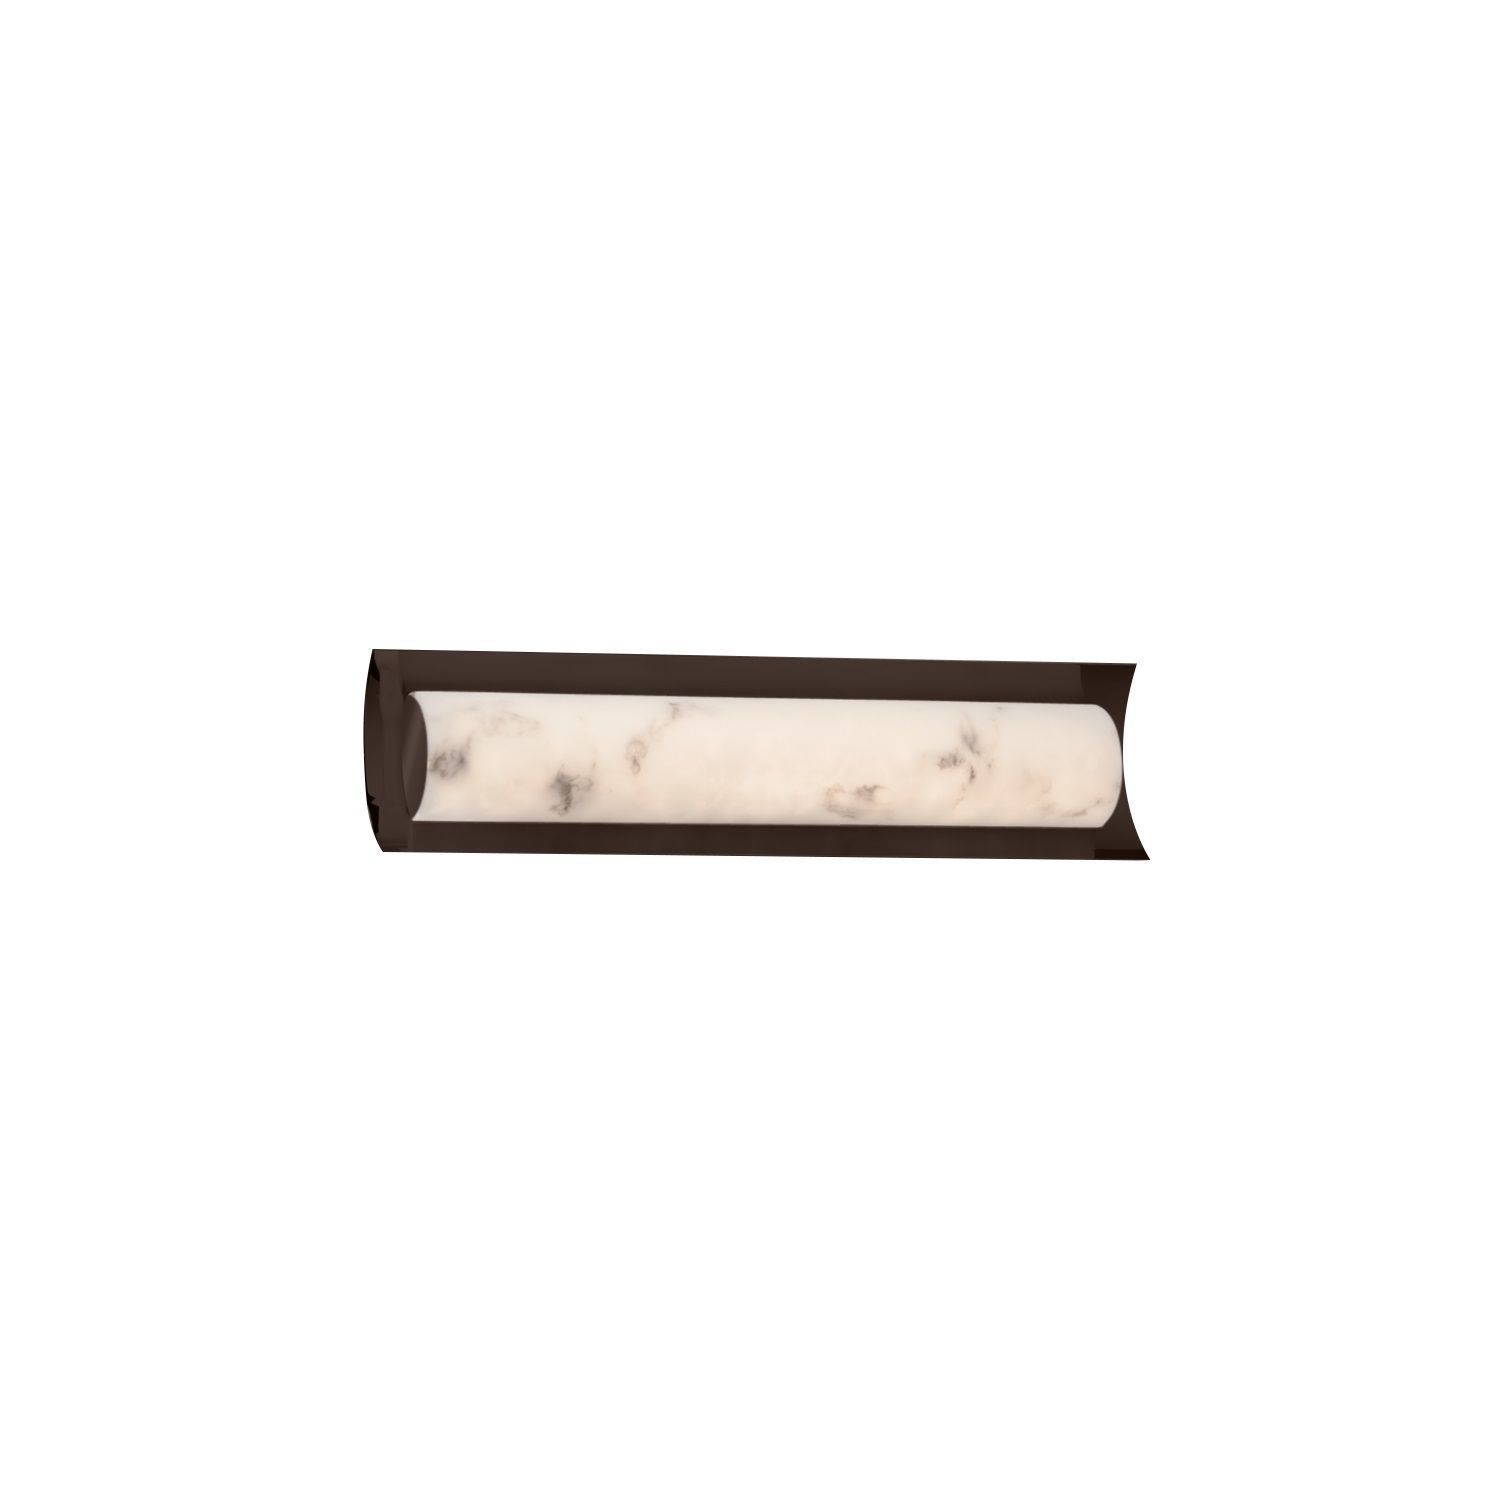 Justice Design Group LumenAria Lineate 22 inch Linear LED Bronze Bath Bar